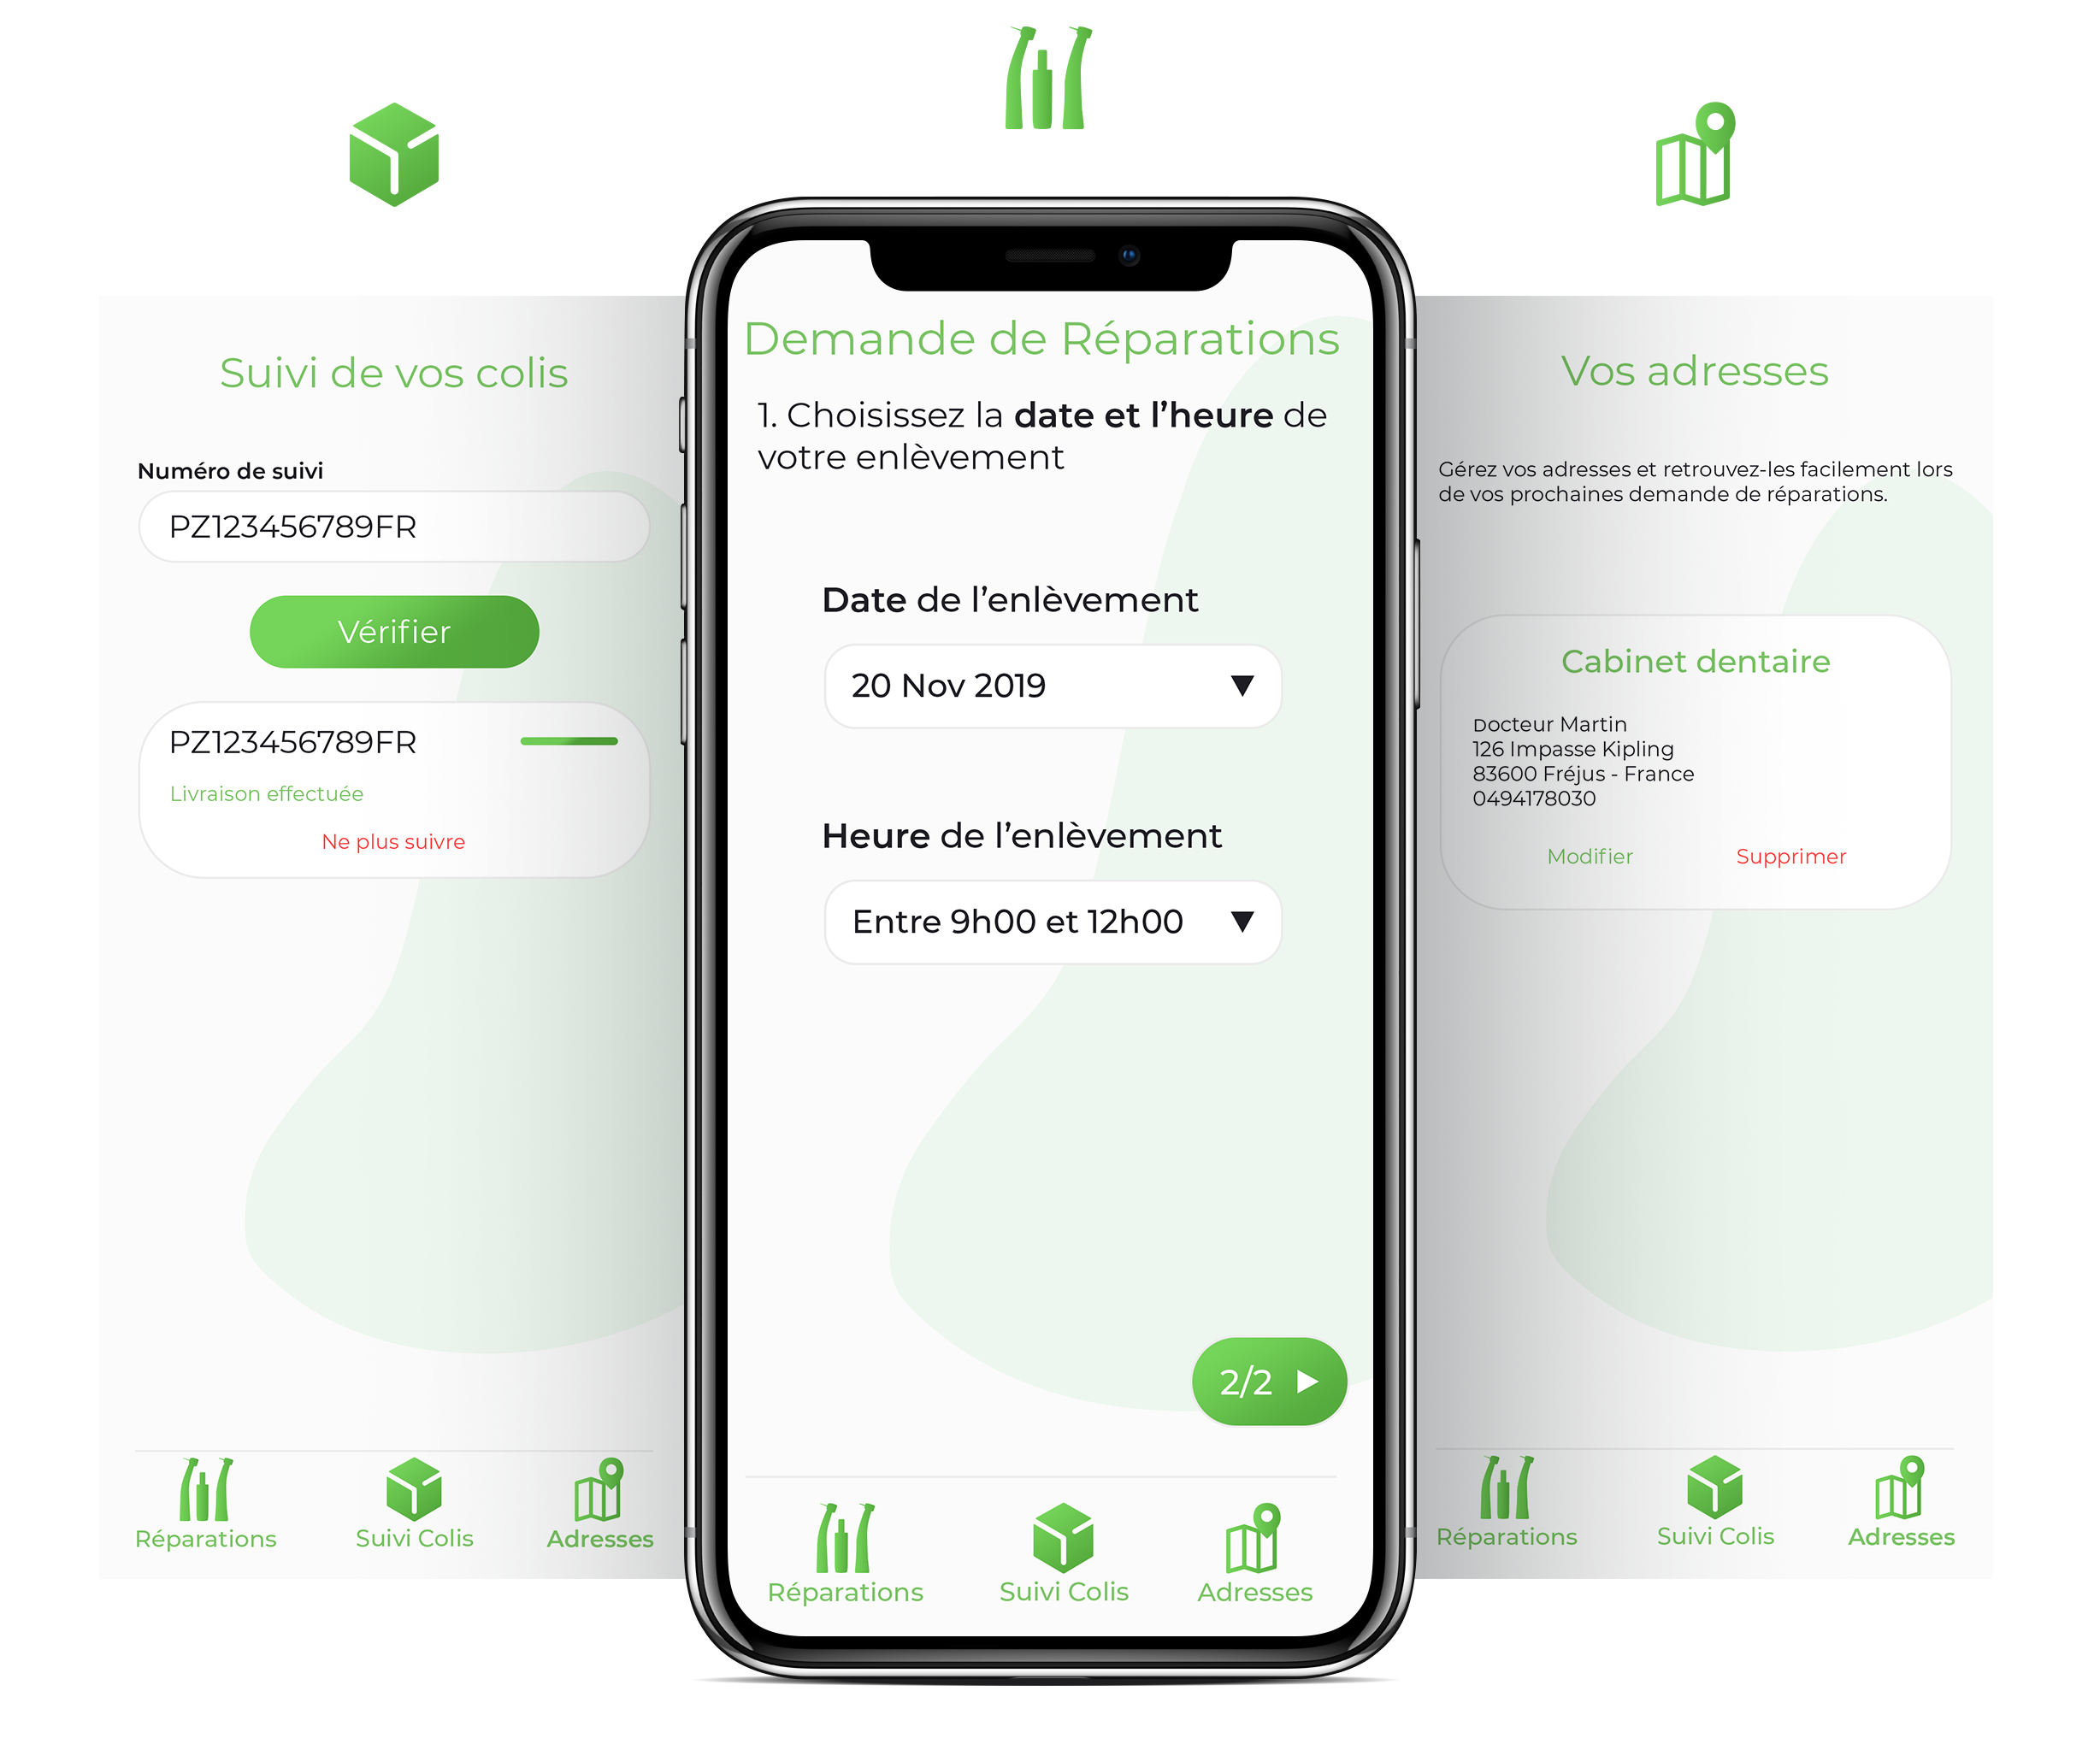 L'app dmd : Fonctionnement de l'application